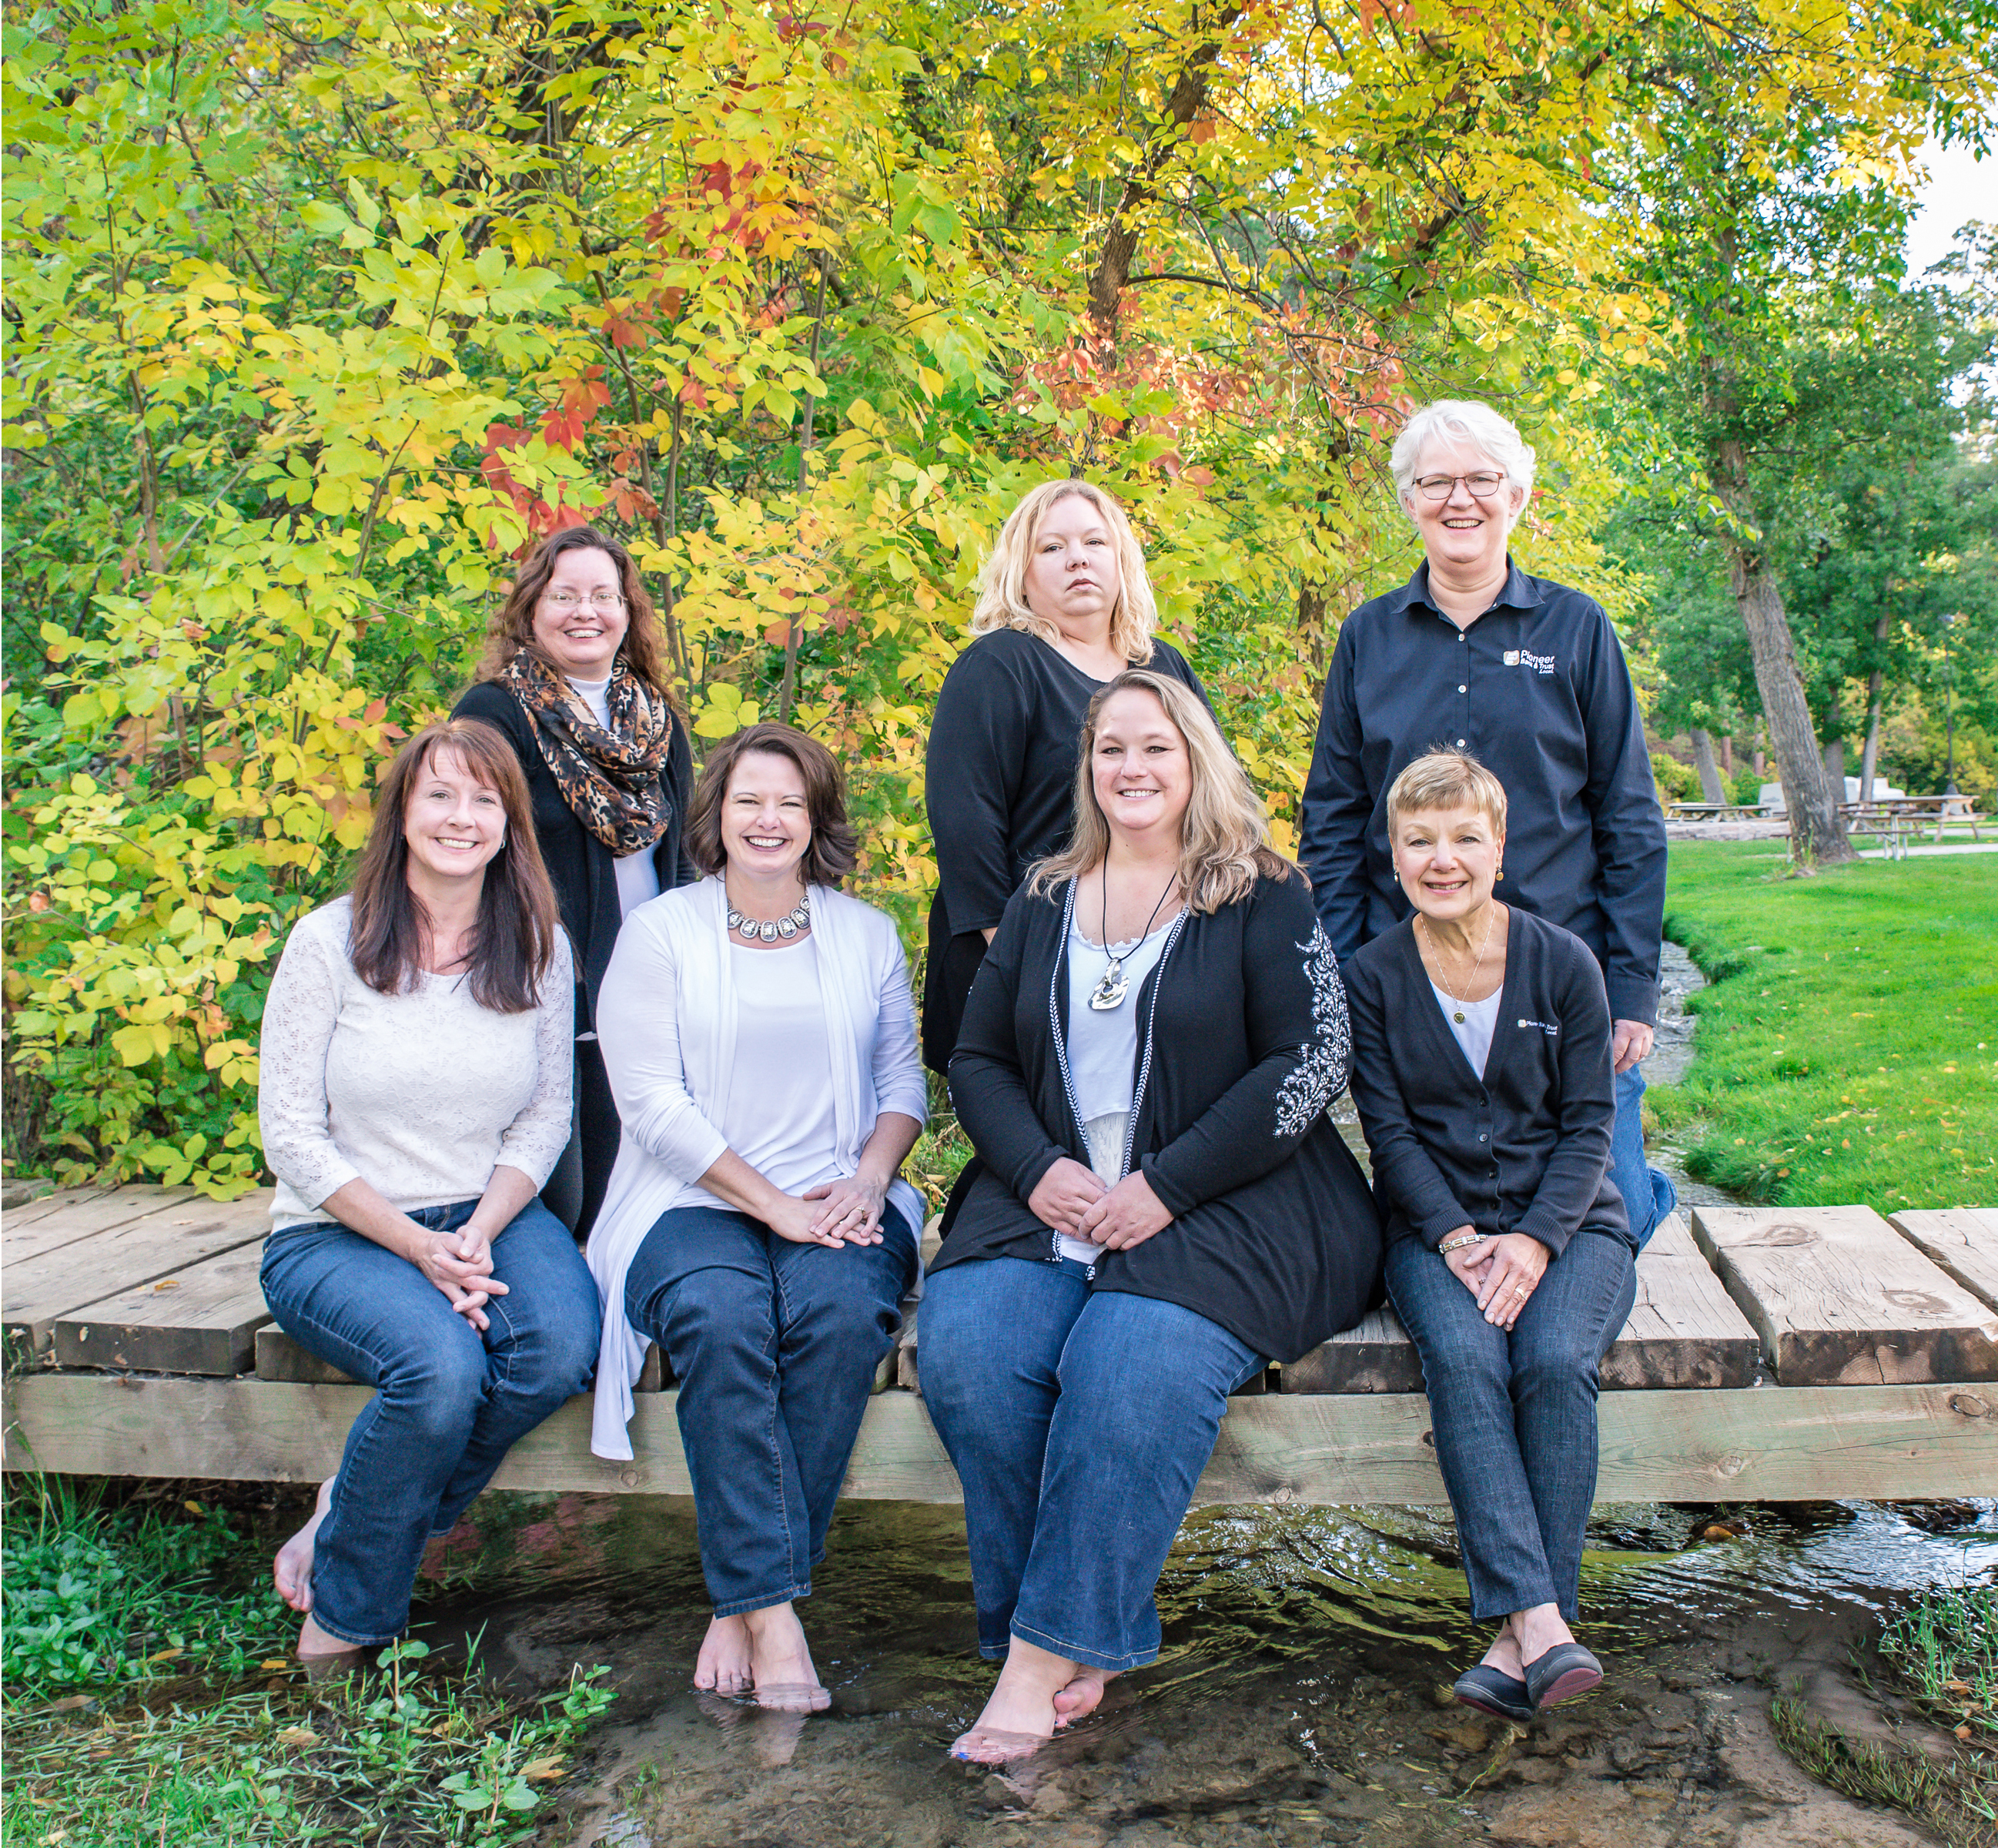 Belle Fourche: Front Row: Cherie, Melynda, Brenda, Amy & Marcie Back Row: Michelle, Linda, Betty & Sandy